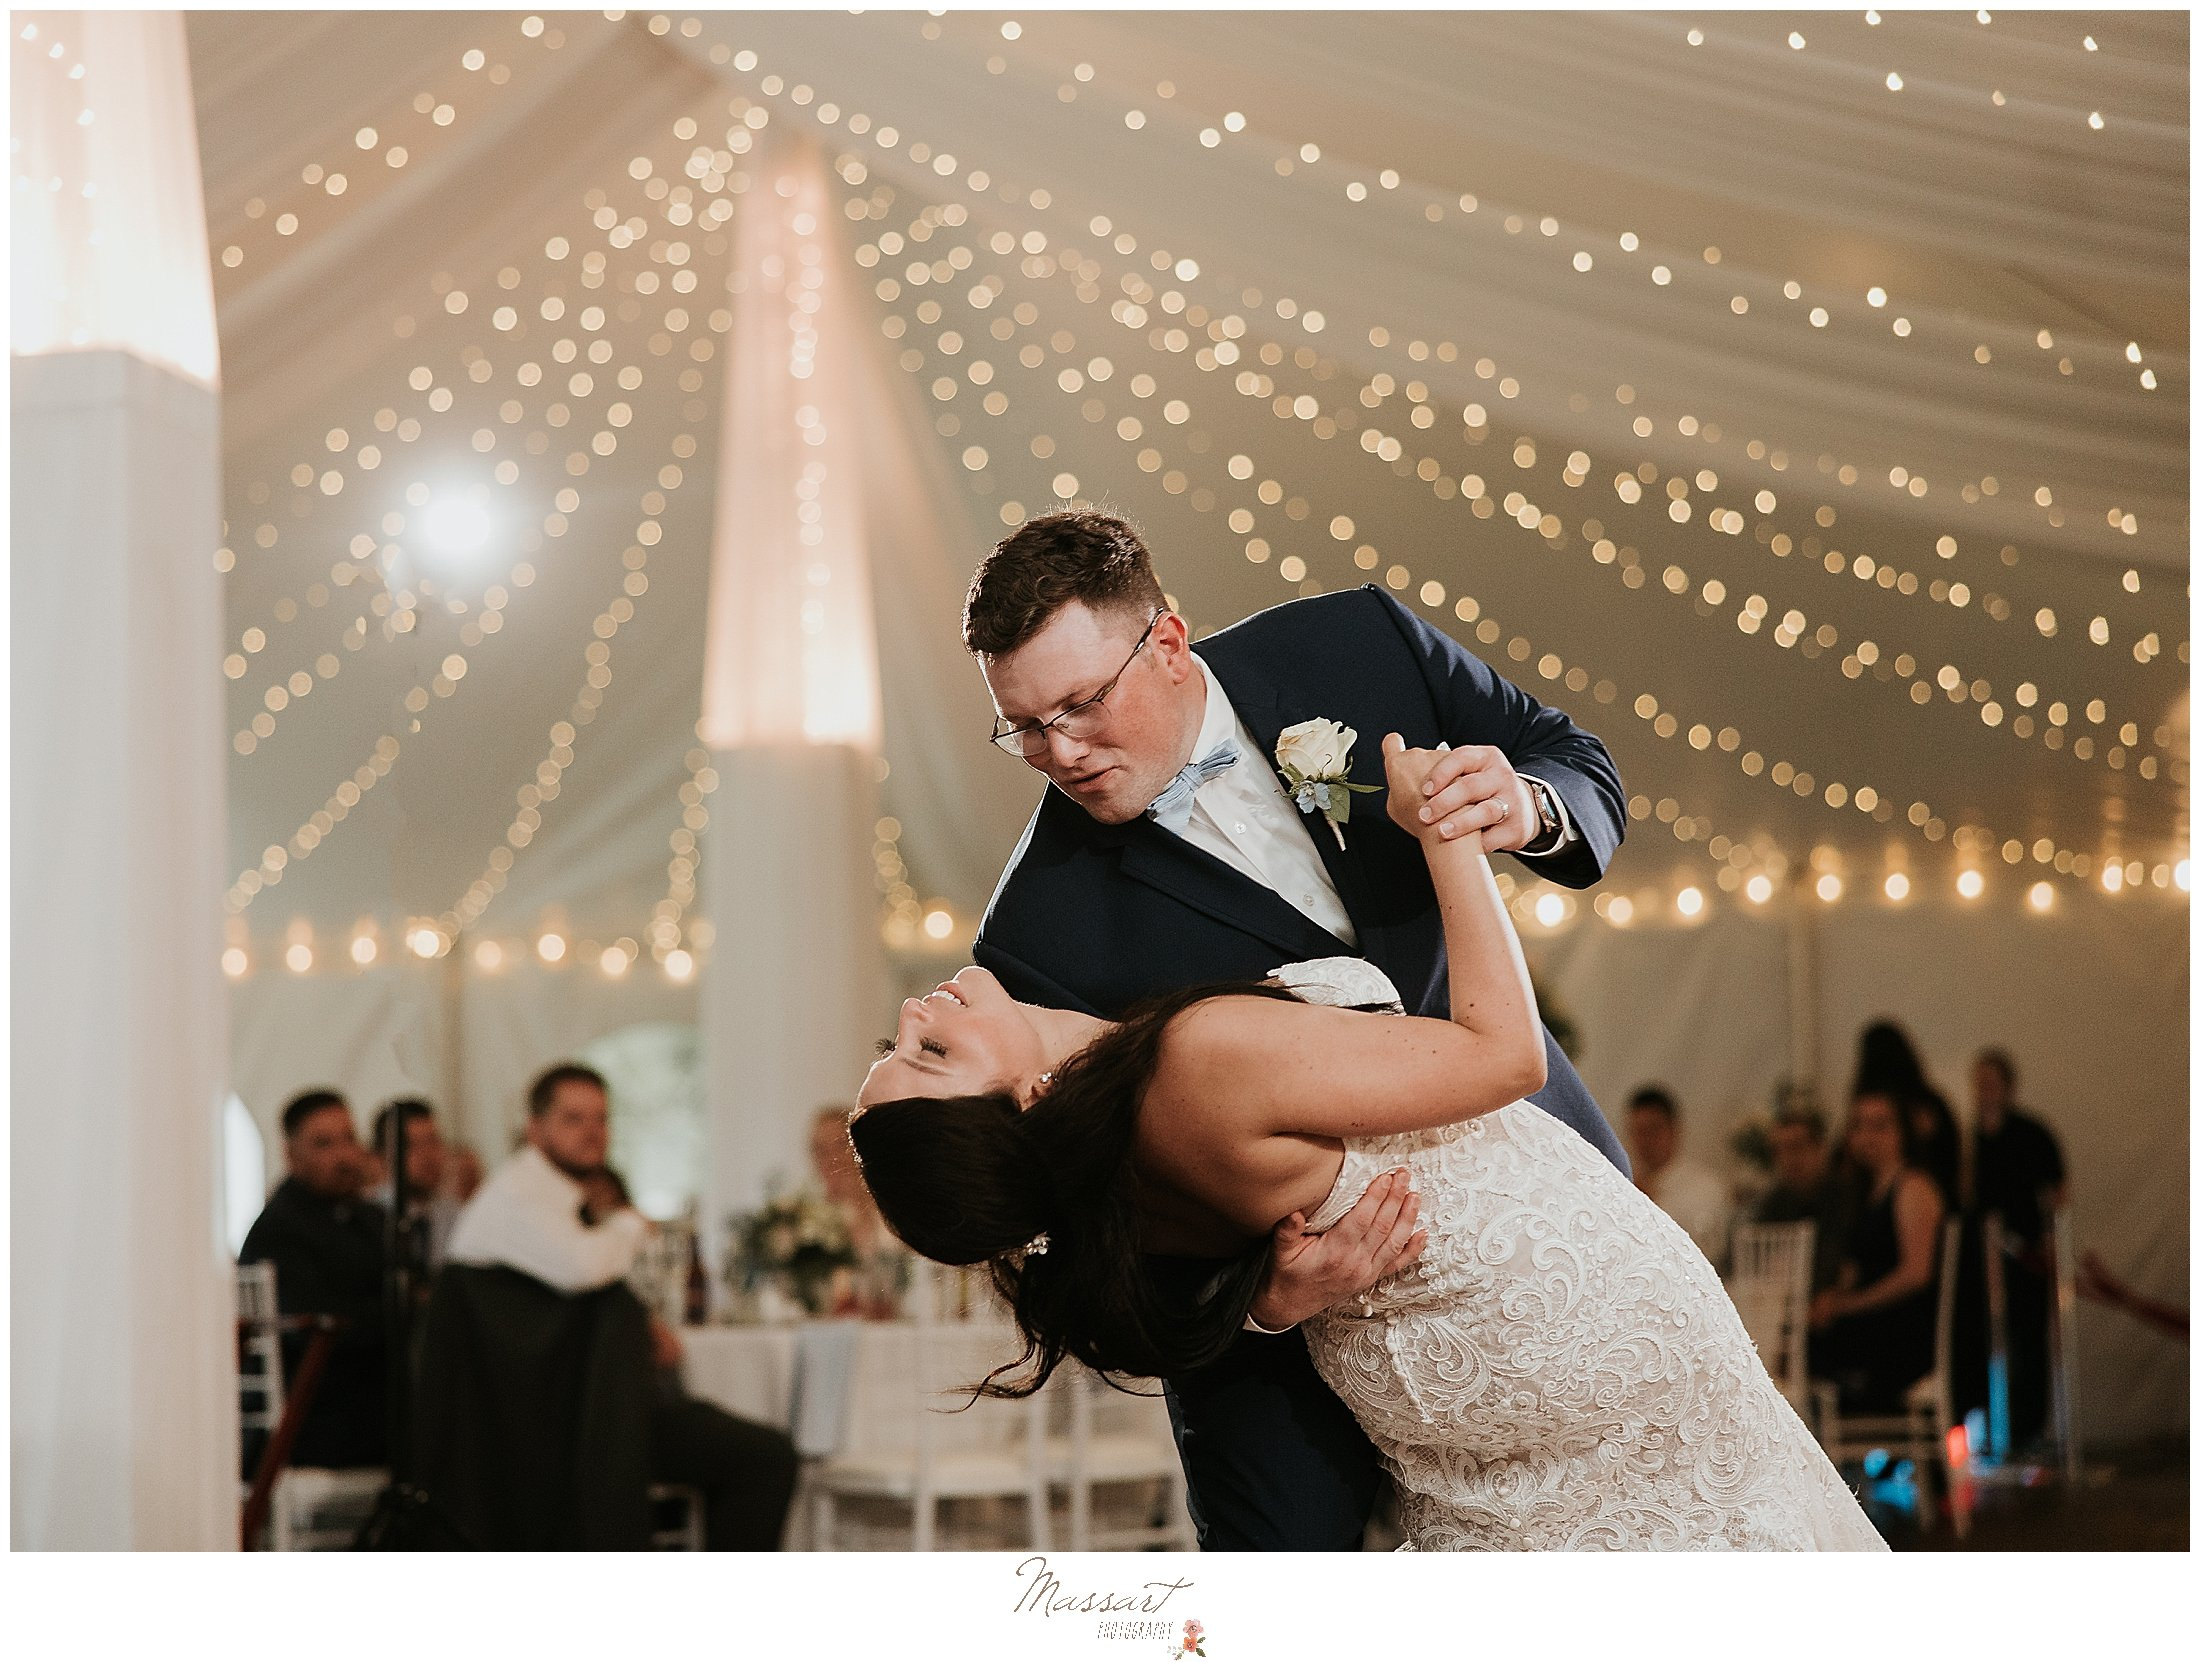 First dance picture at MA wedding